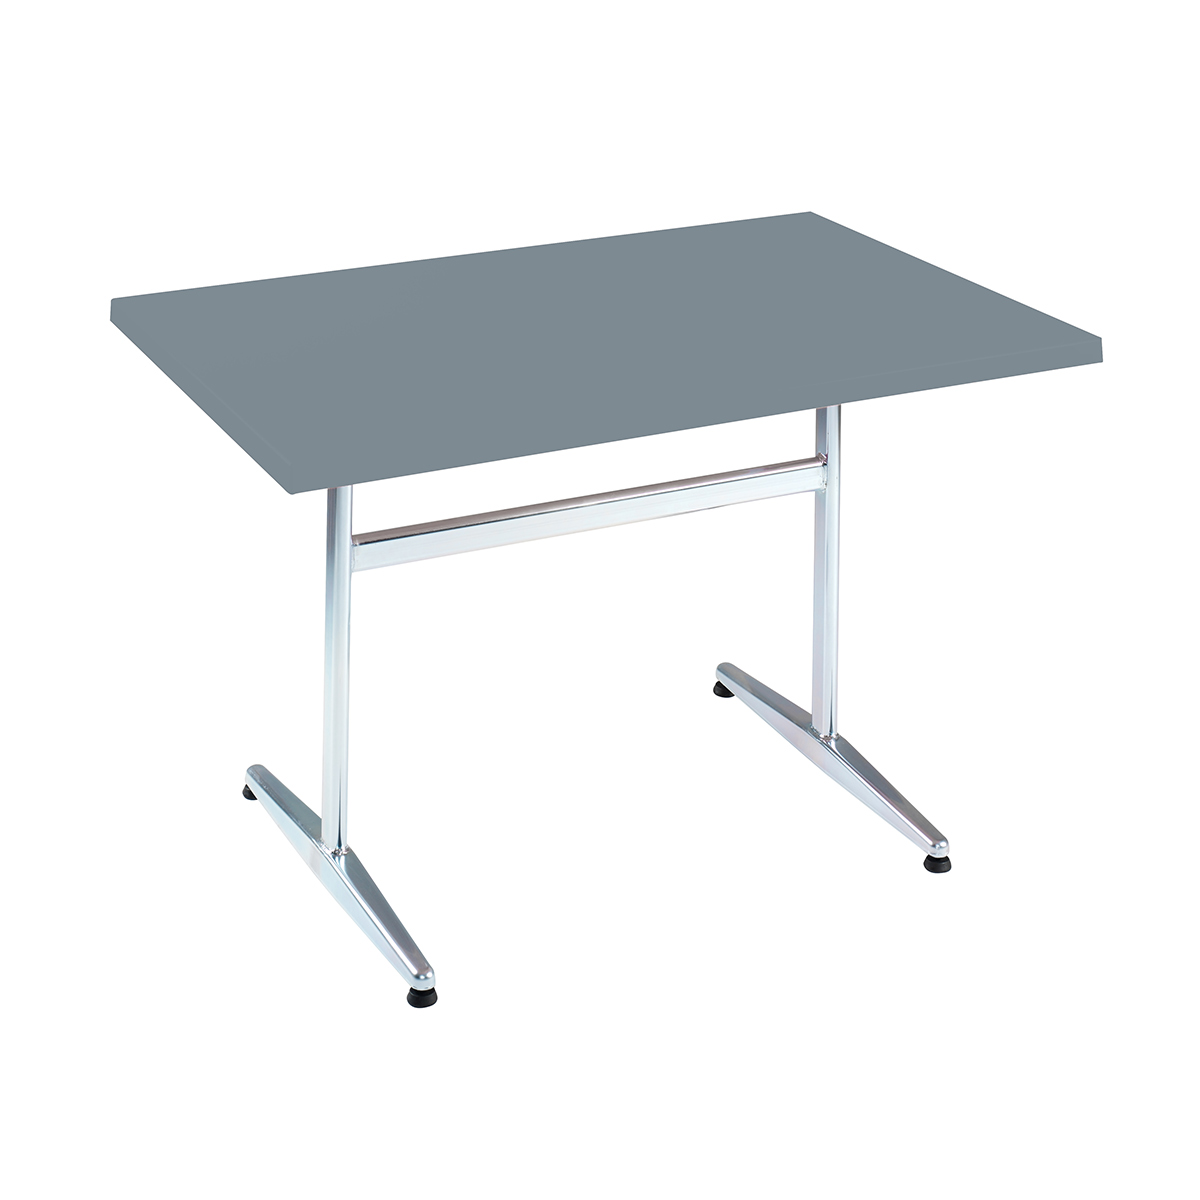 Table PRV gris, brillante, Piétement électrozingué en T Basic, 120 x 70 x 3.5 cm, H 73 cm